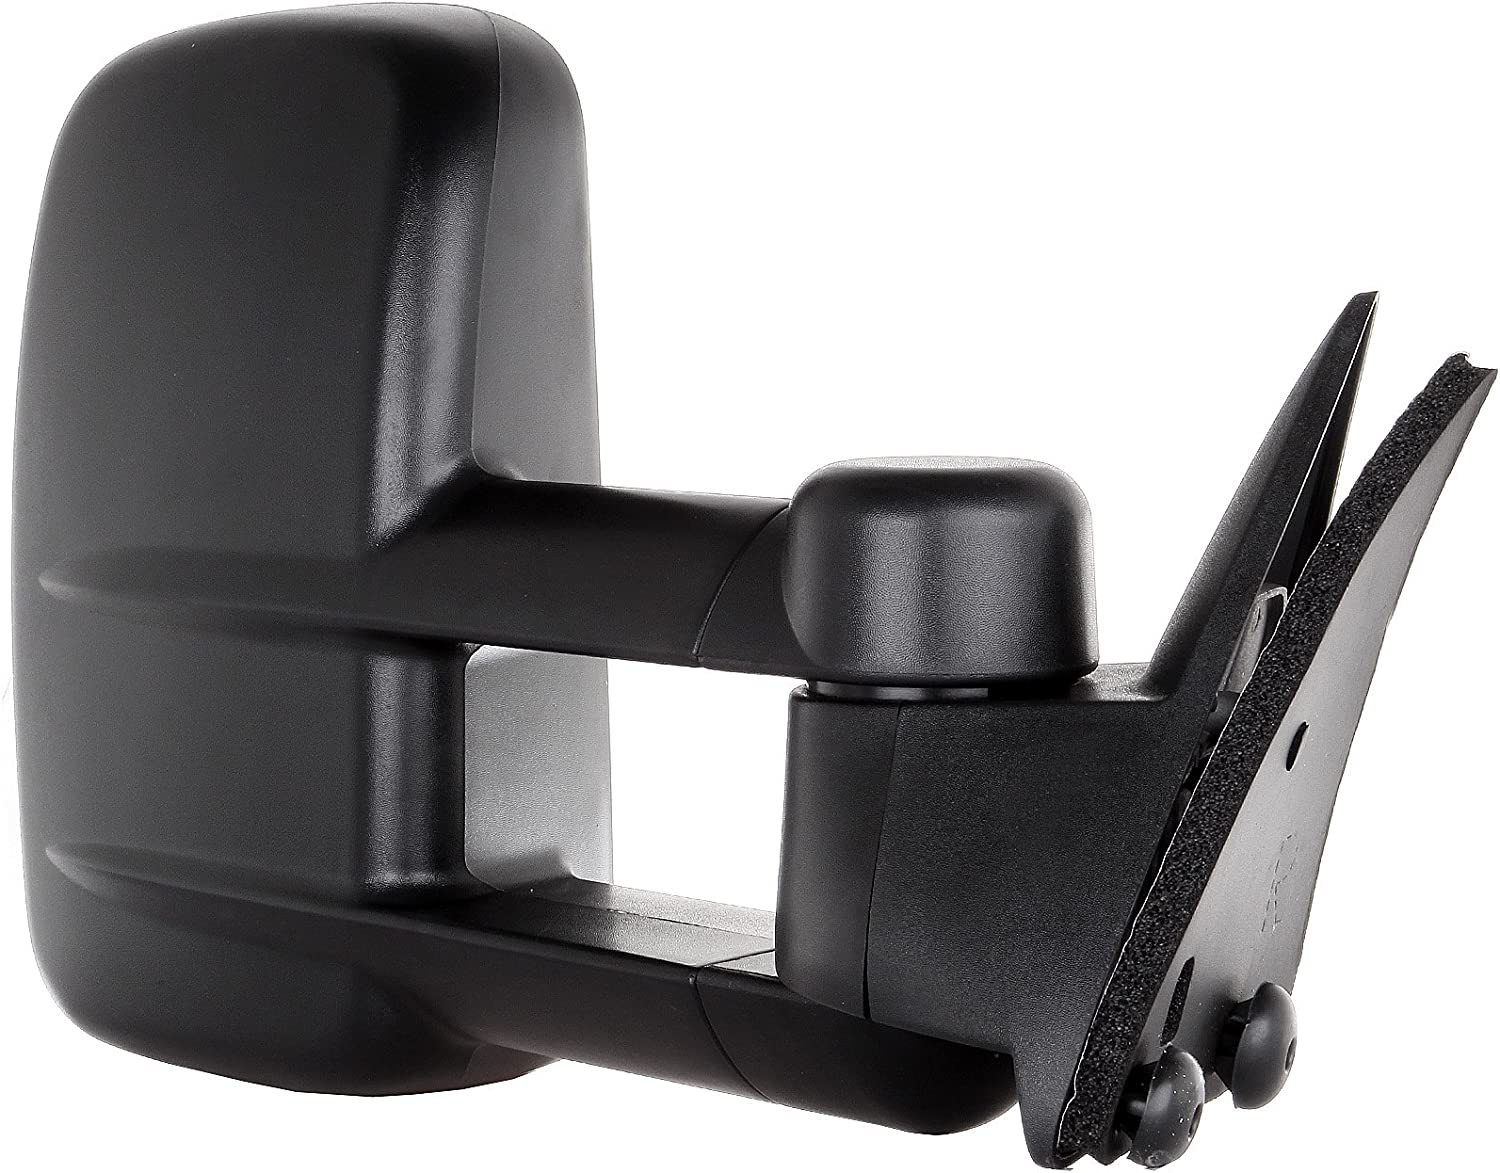 OCPTY Towing Mirrors Manual No Heated Left Driver Right Passenger Side Tow Mirrors Fit for 1988-2001 Chevy//GMC C3500 1992-1999 Chevy//GMC Suburban with No Turn Signal Light with Black Housing